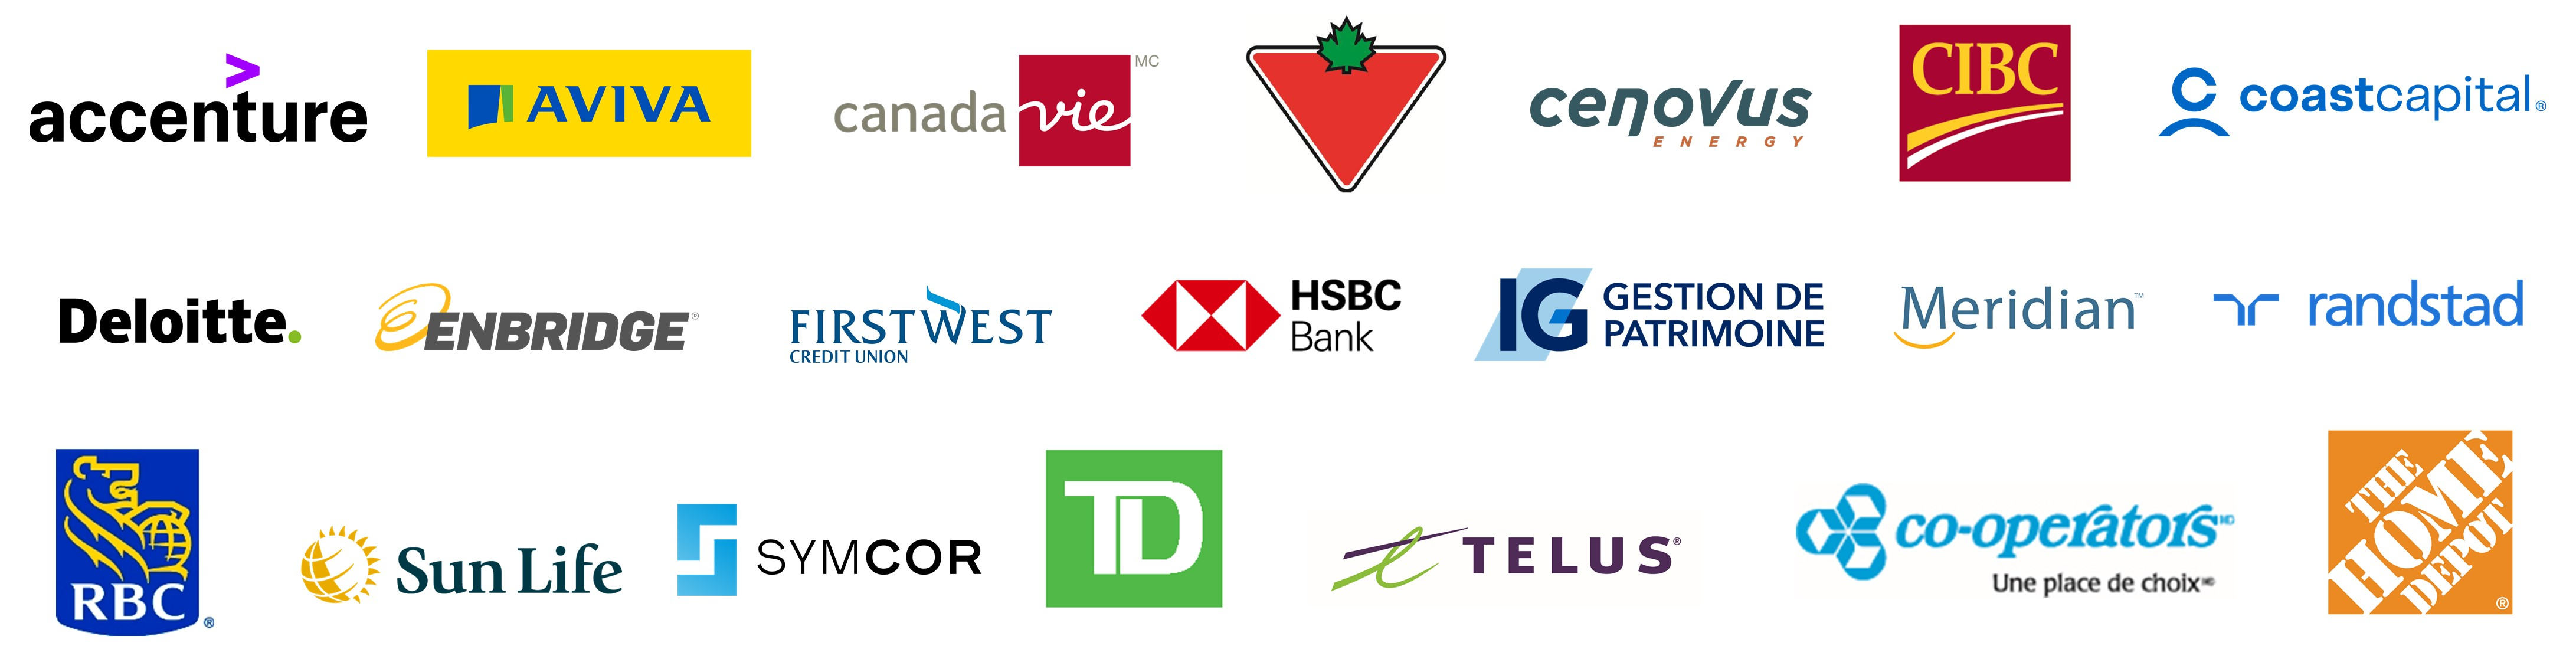 Accenture - Aviva - Canada vie - Canadian Tire - Cenovus Energy  CIBC - Coast Capital - Deloitte - Enbridge  - First West Credit Union HSBC Bank - IG gestion de patrimoine - Meridian  - Randstad - RBC Sun Life - Symcor - TD - Telus - The Co-operators - The Home Depot